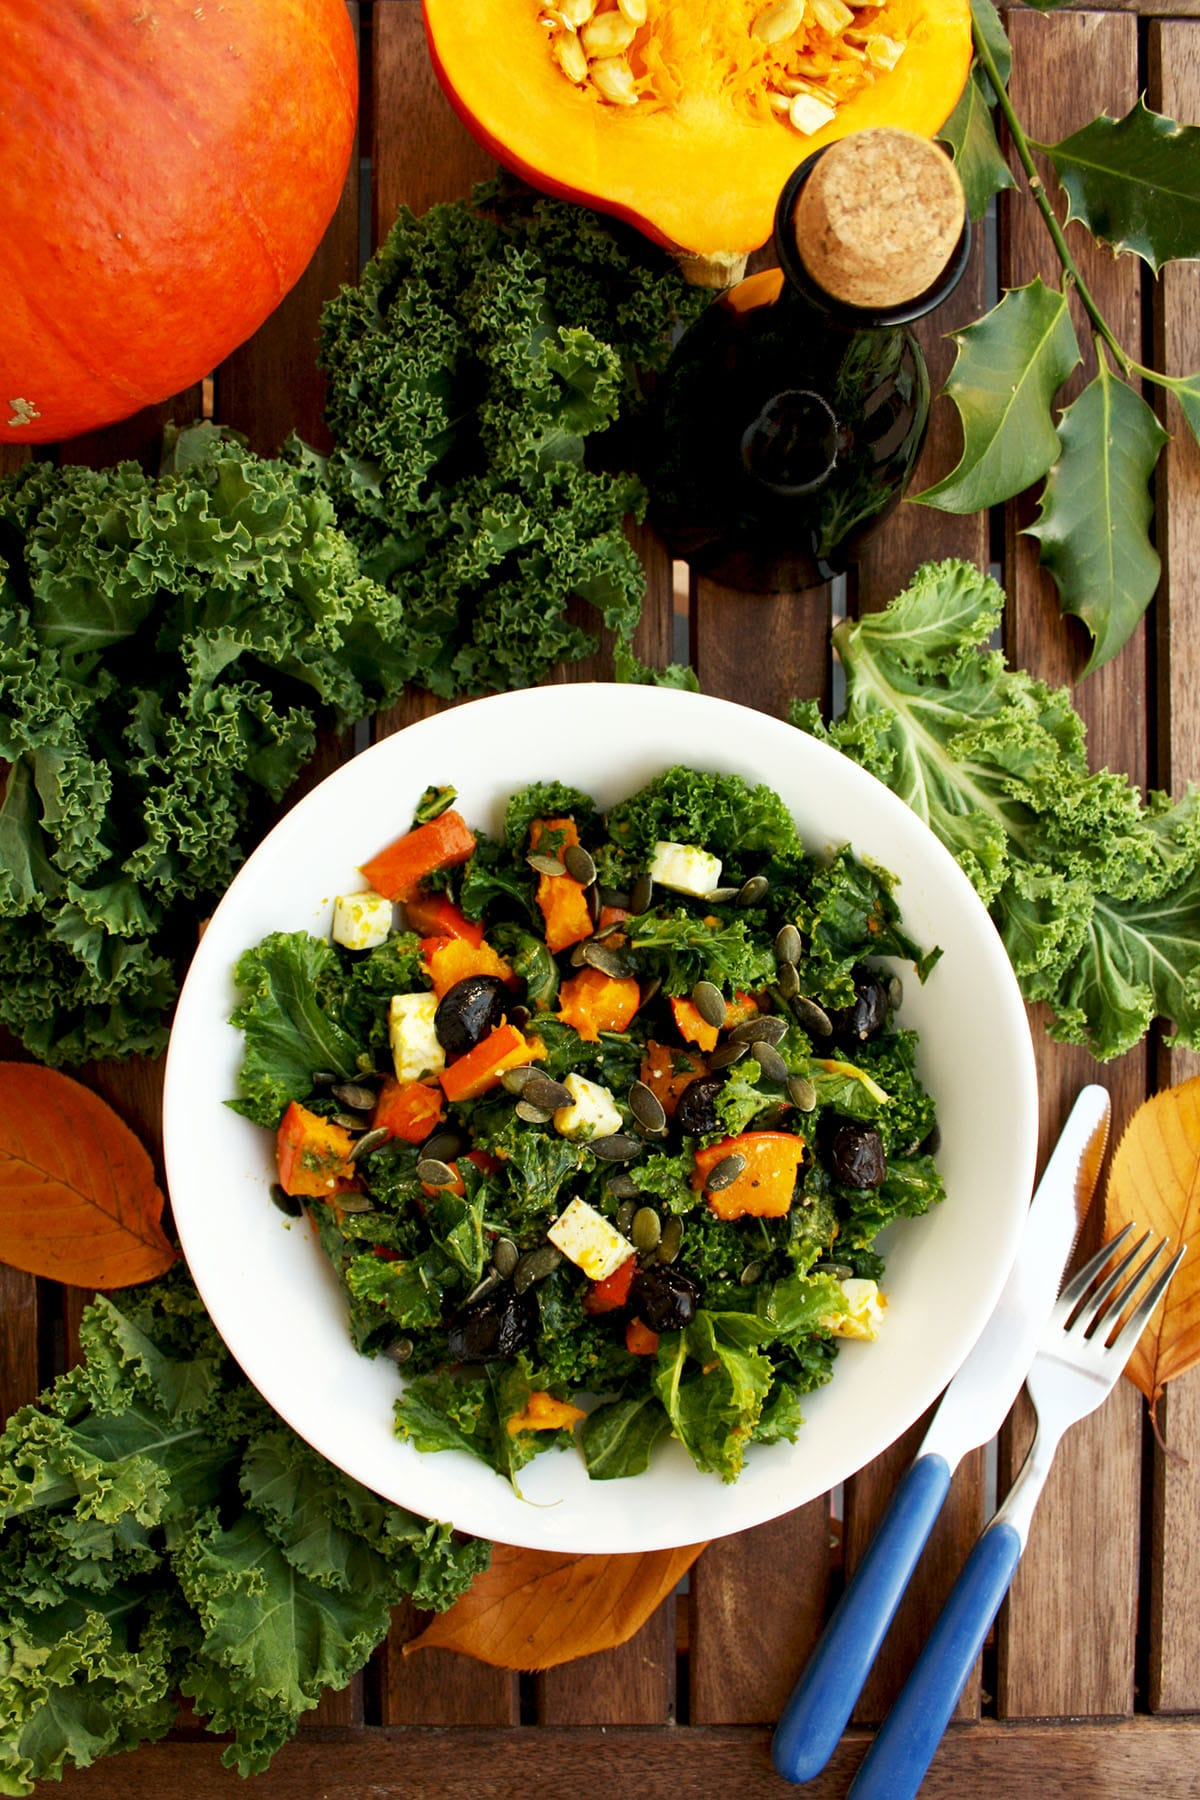 Kale Pumpkin Salad with Feta and Pesto Dressing: Easy-to-make, fast, healthy and delicious salad packed with fall flavors. Perfect seasonal salad!